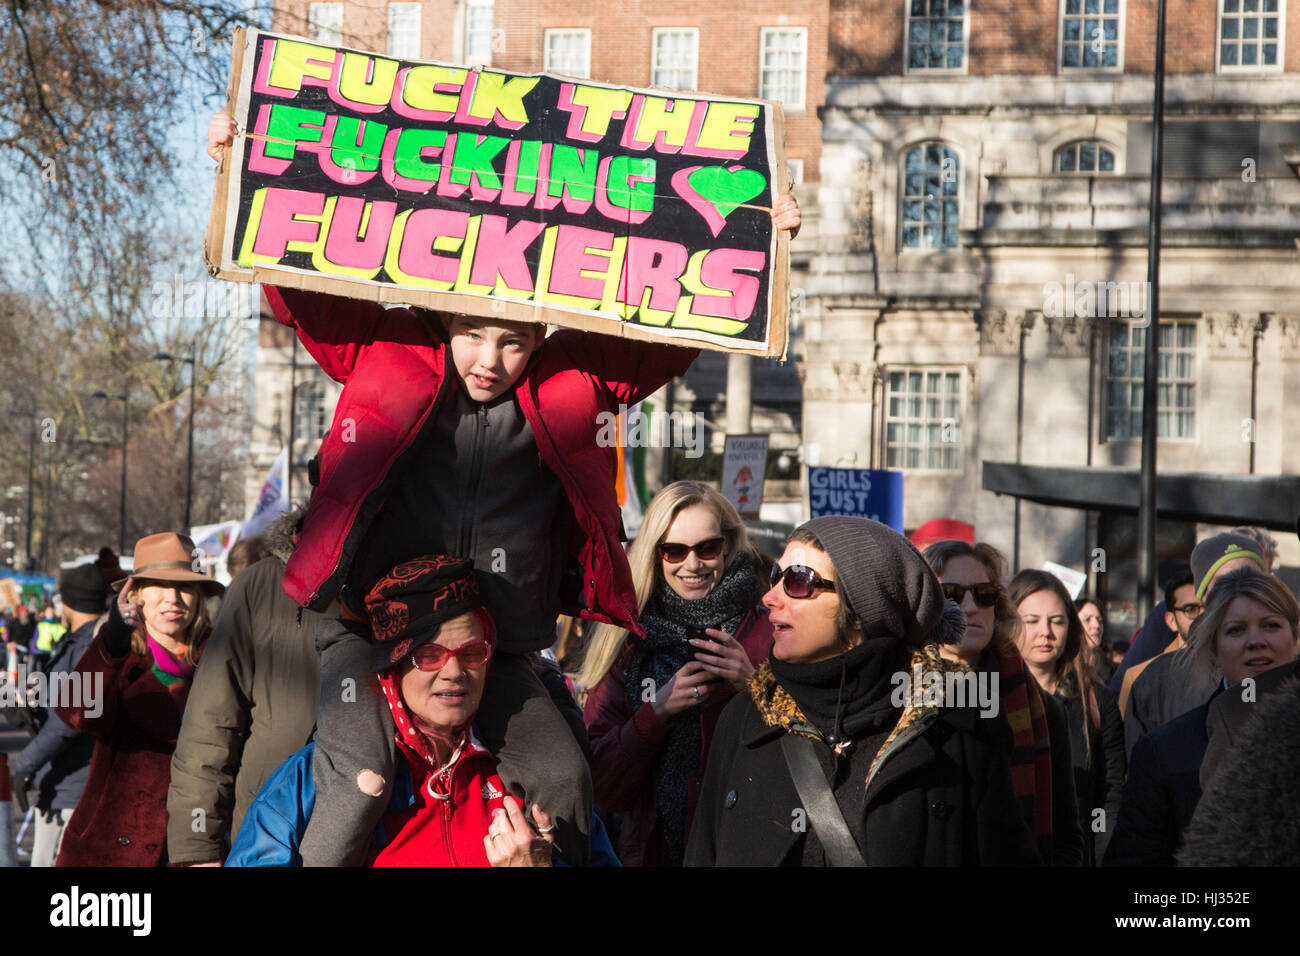 London, UK. 21 January 2017. Protesters take part in the Women's March, which is an anti-Trump protest. More - Stock Image